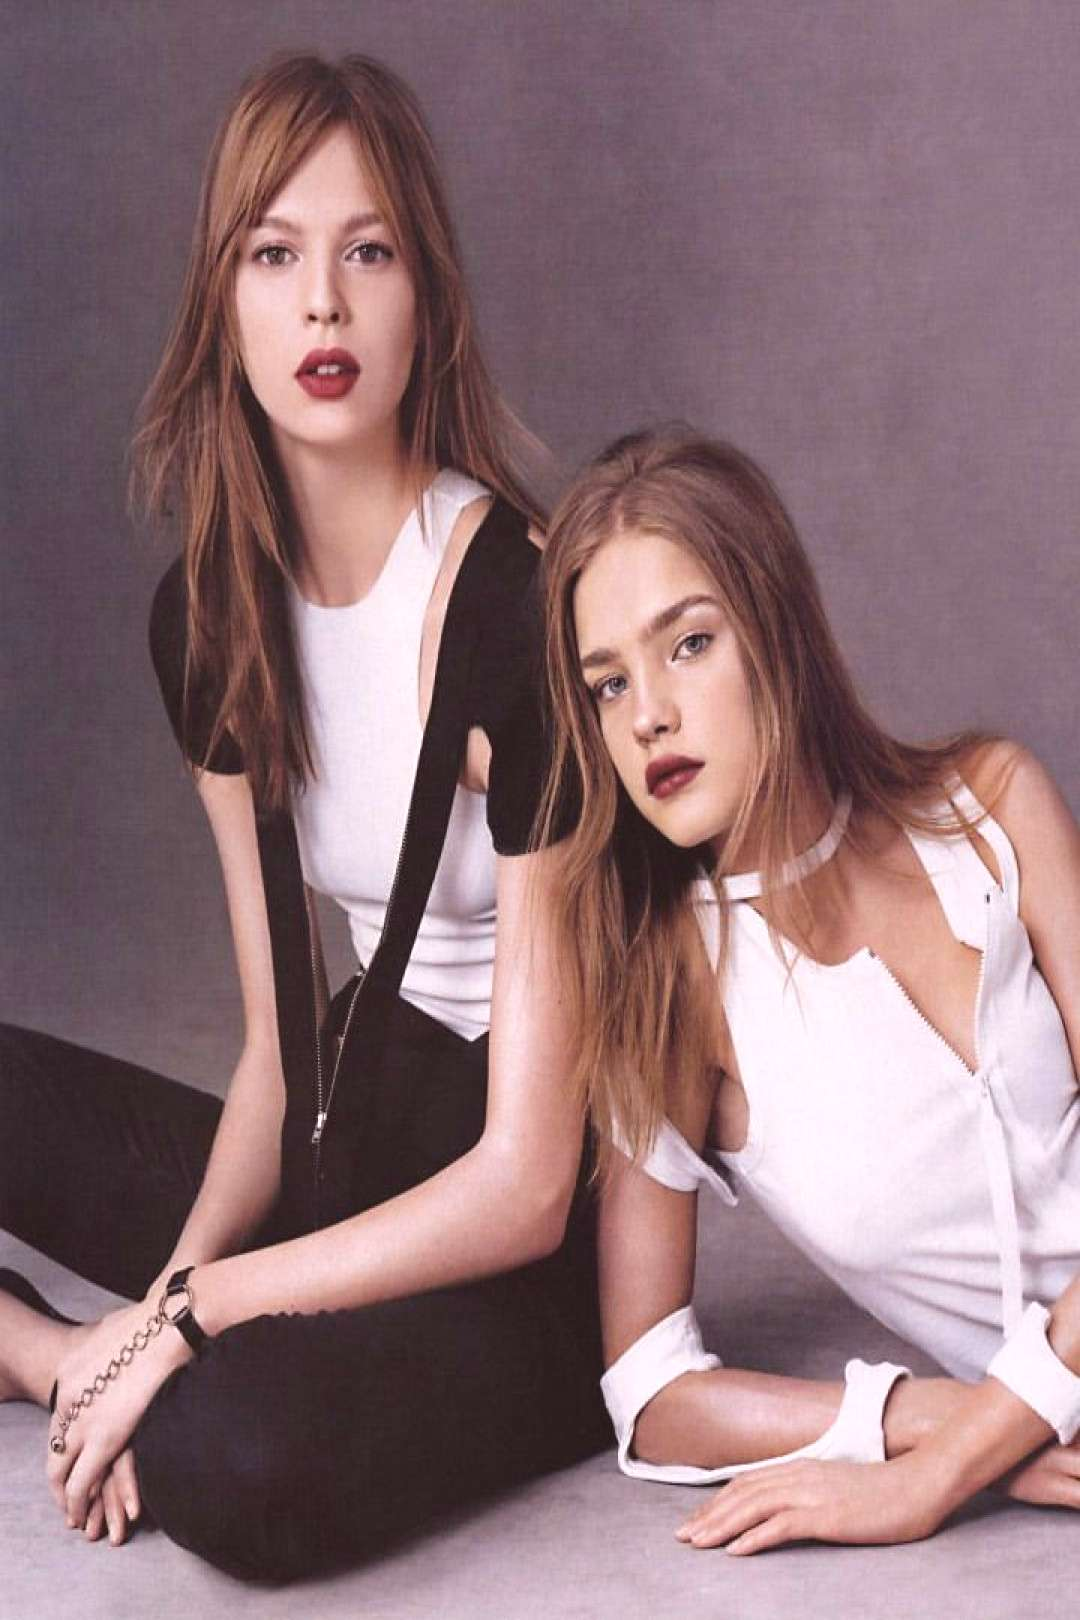 Editorial Fashion Photography and Inspiration for womens fashion,#editorial